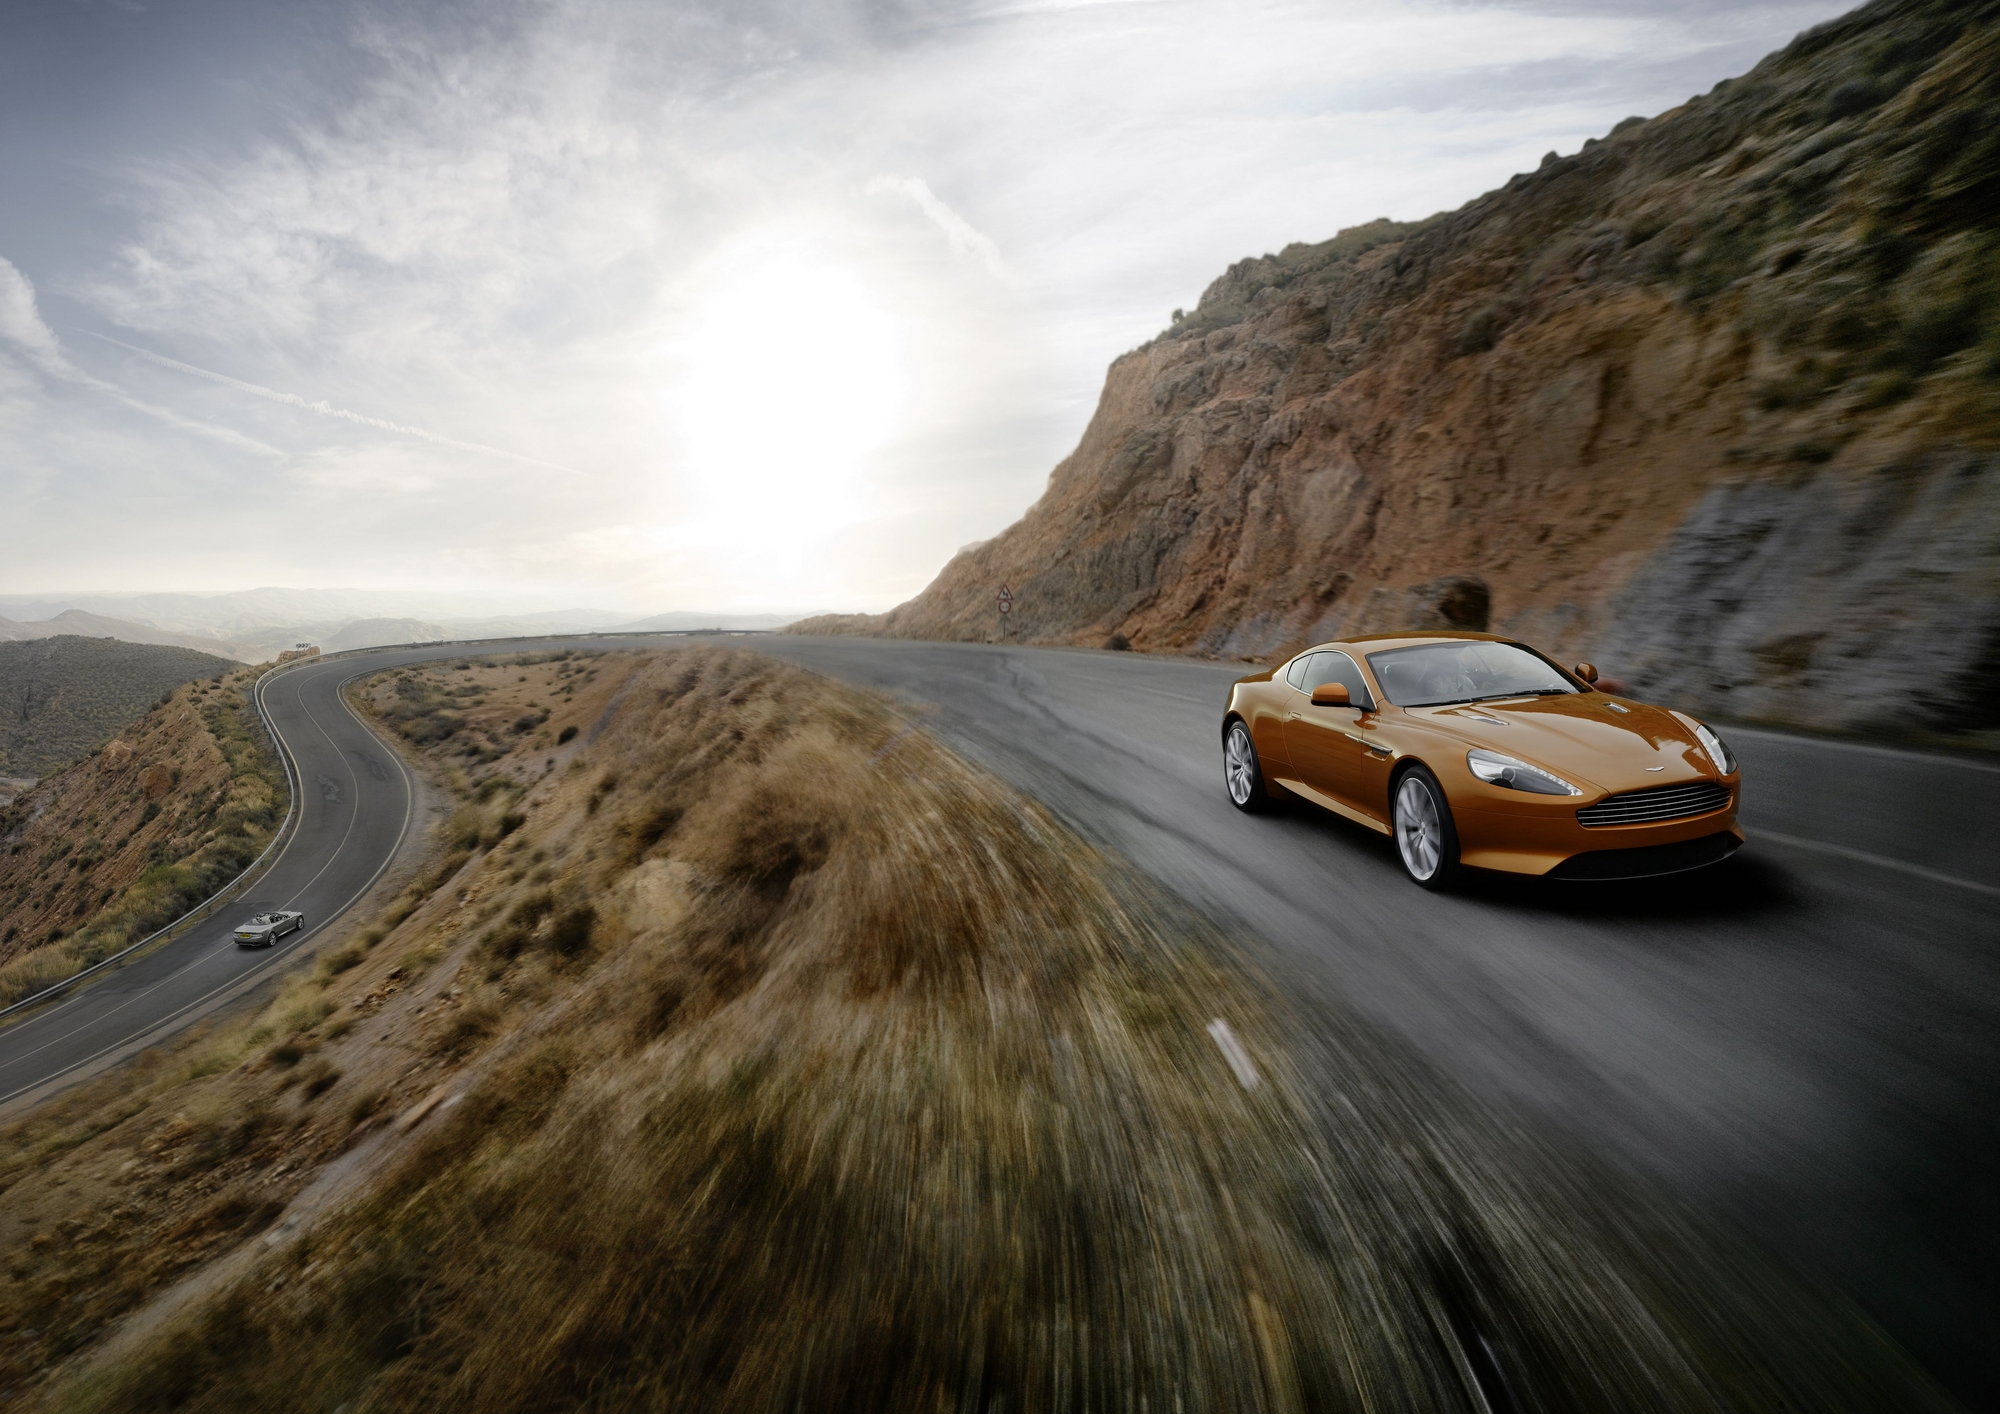 Aston Martin gives new life to the Virage